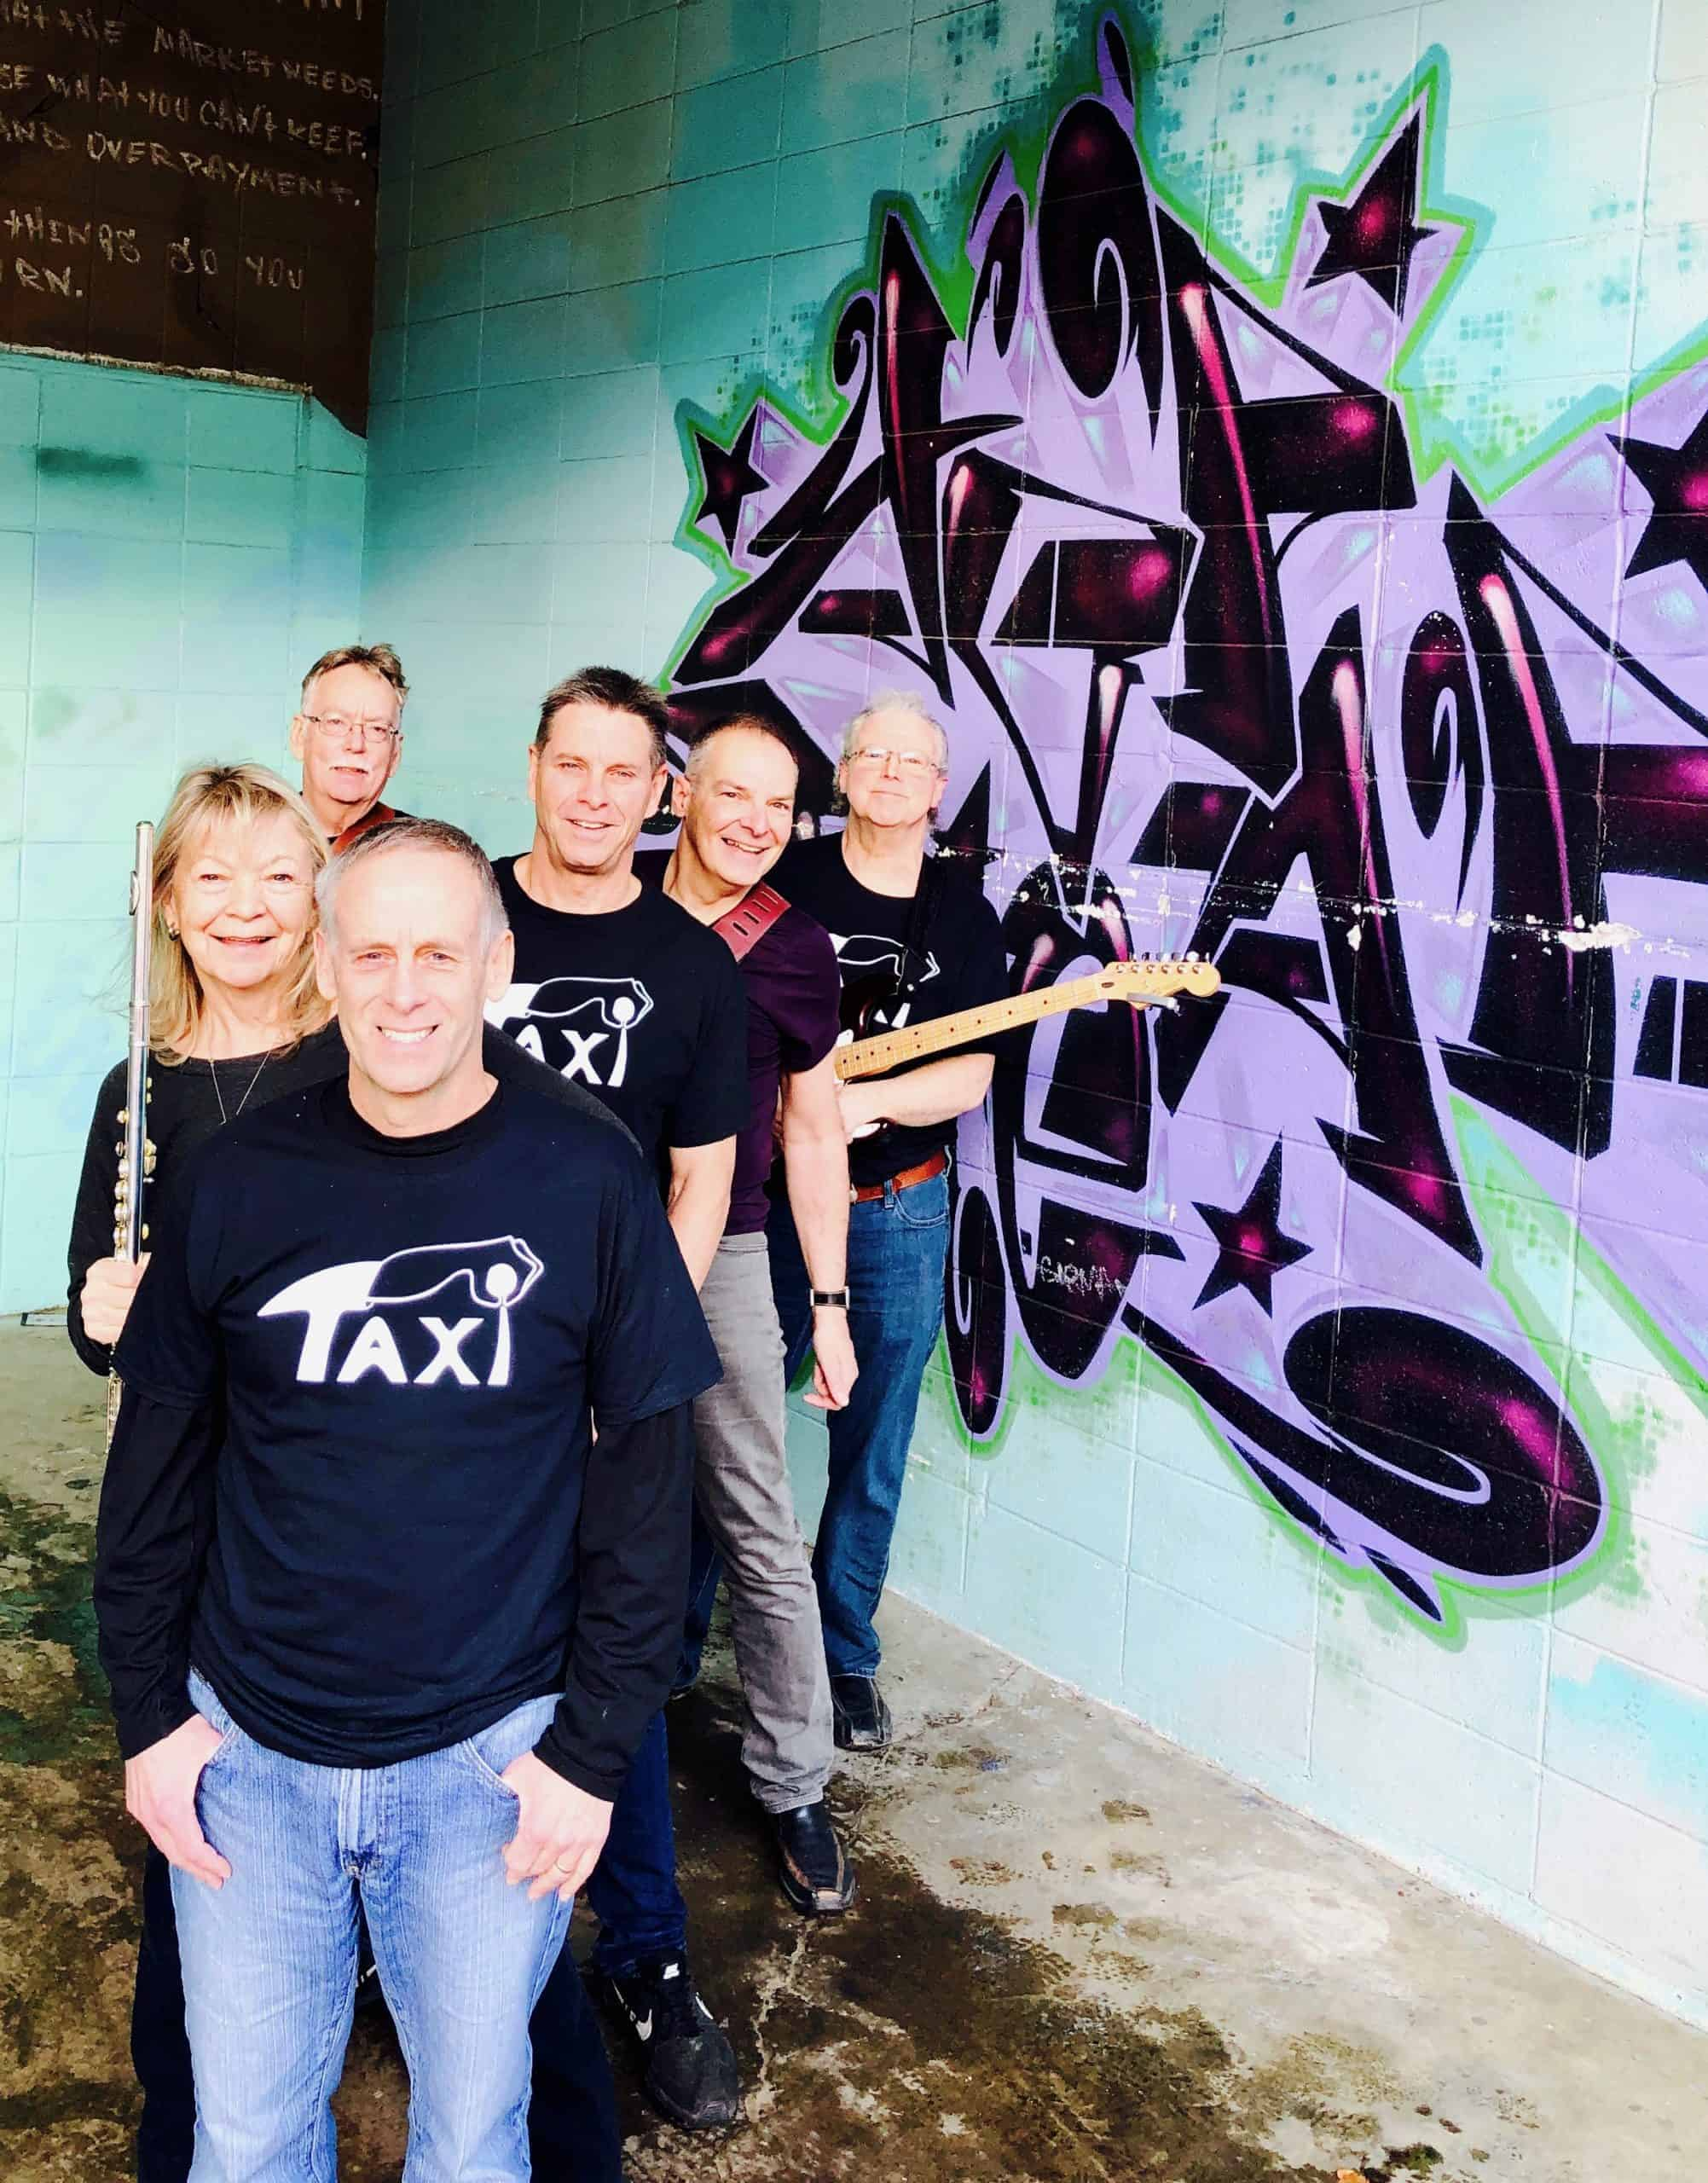 Taxi, a rock band at Backbeat - the place for rock bands and music lessons